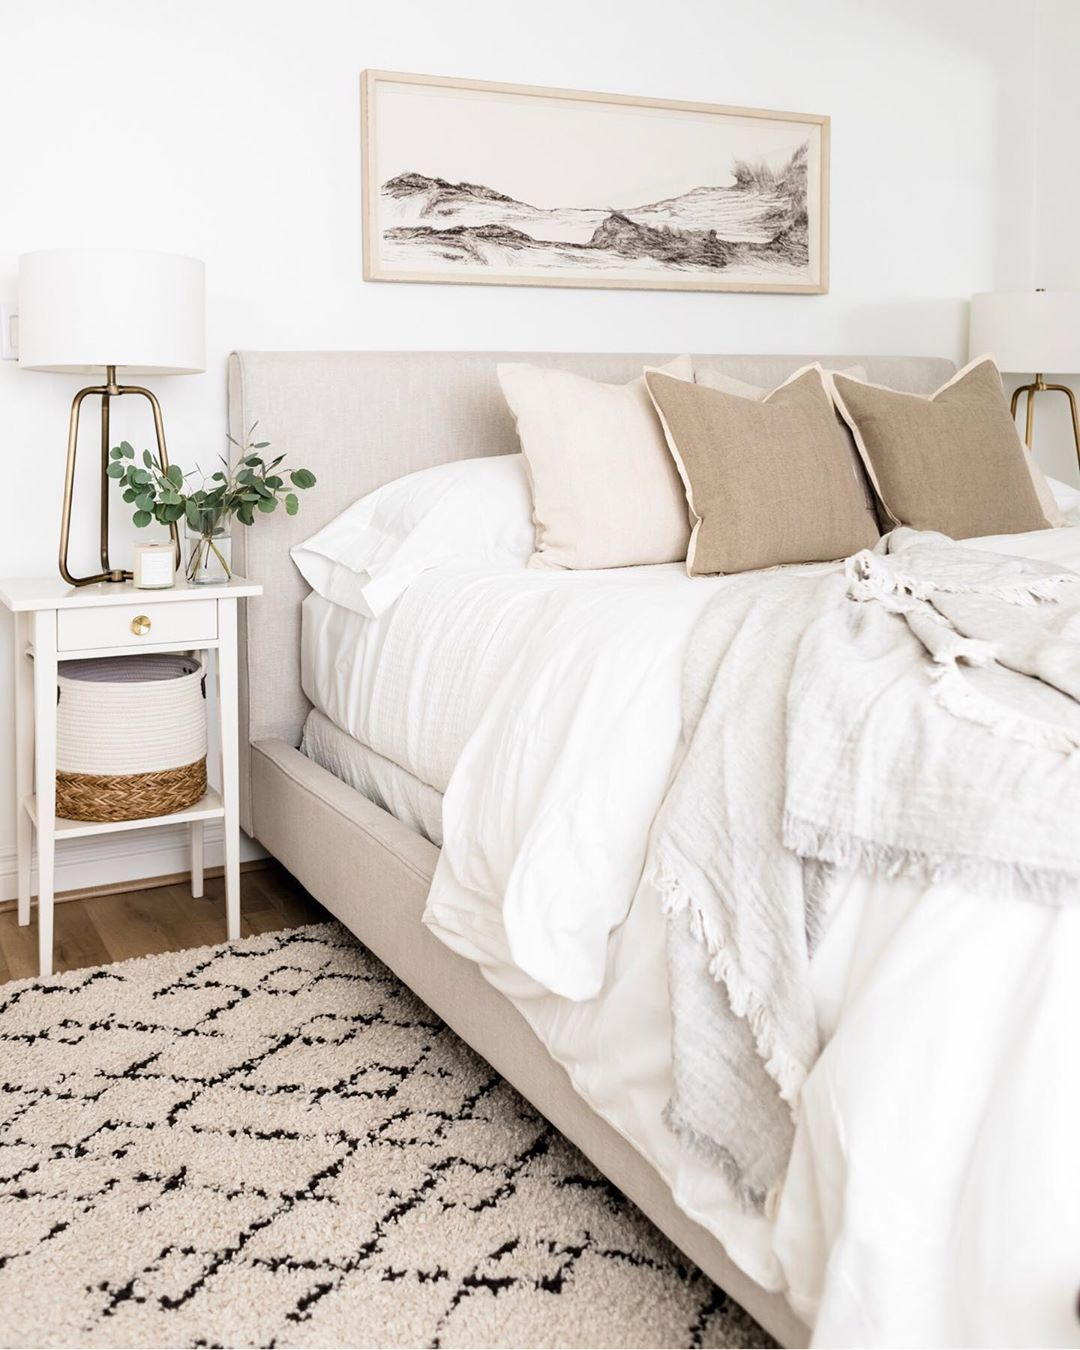 Katie Staples On Instagram Since Fall Is Officially Here I M Talking About The 5 Things To Consider When Changing Cozy Bedroom Neutral Bedroom Bedroom Inspo